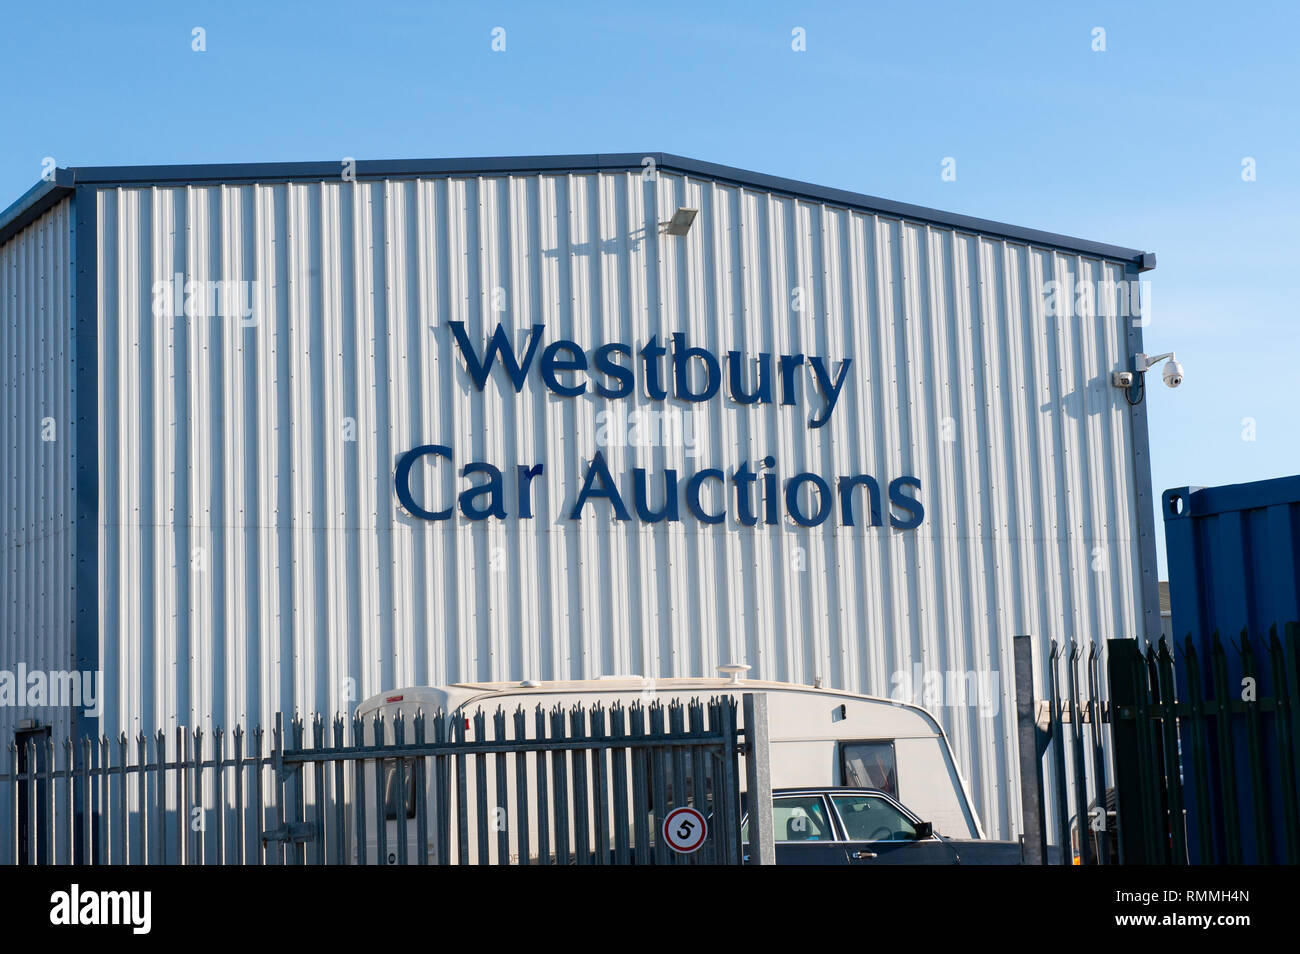 Industrial unit at Westbury Car Auctions, Wiltshire, UK - Stock Image